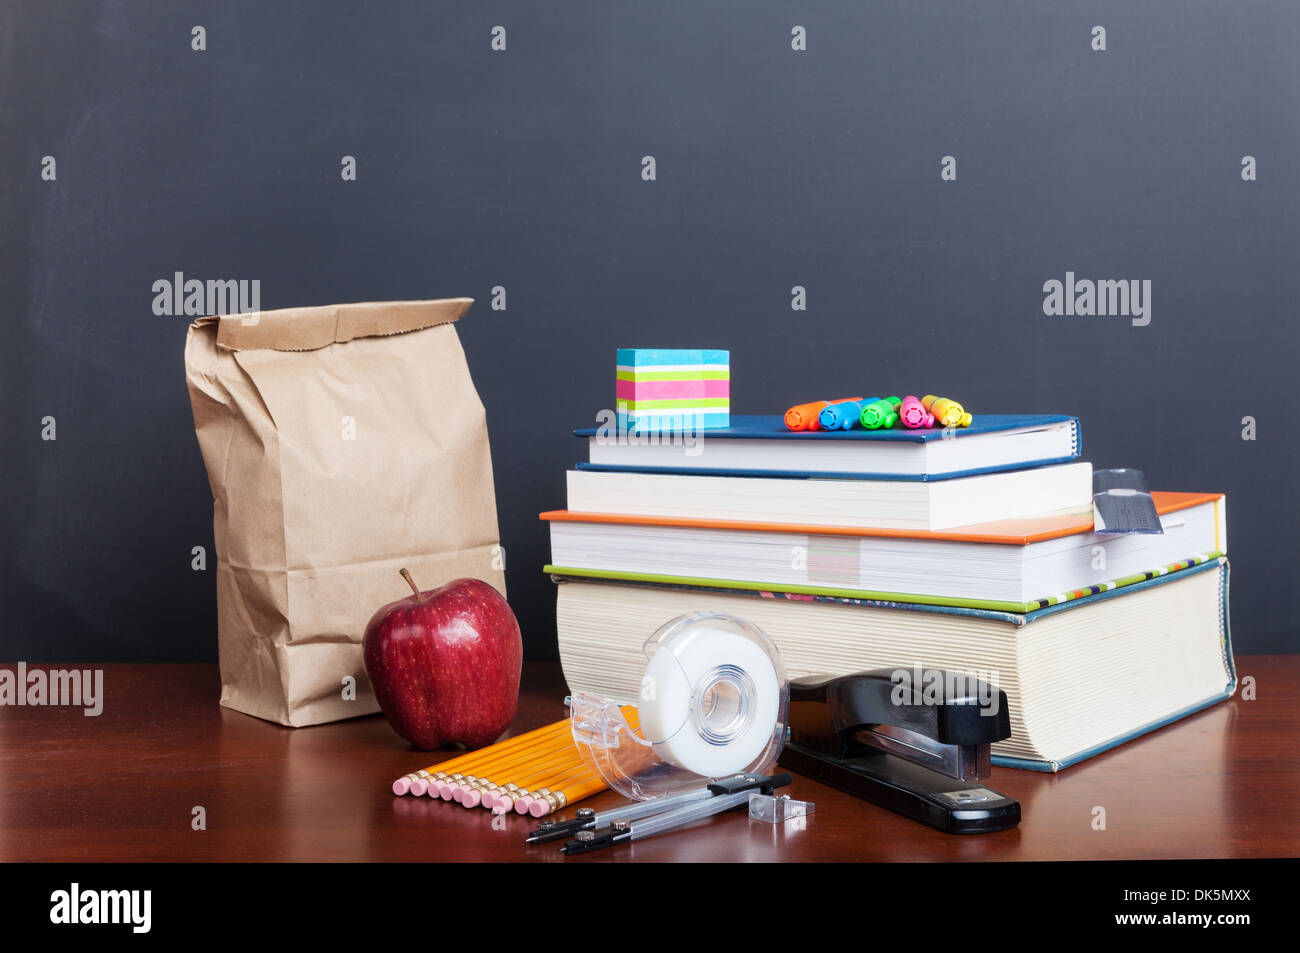 School books with apple and paper bag lunch on desk in front of a blank chalkboard. - Stock Image